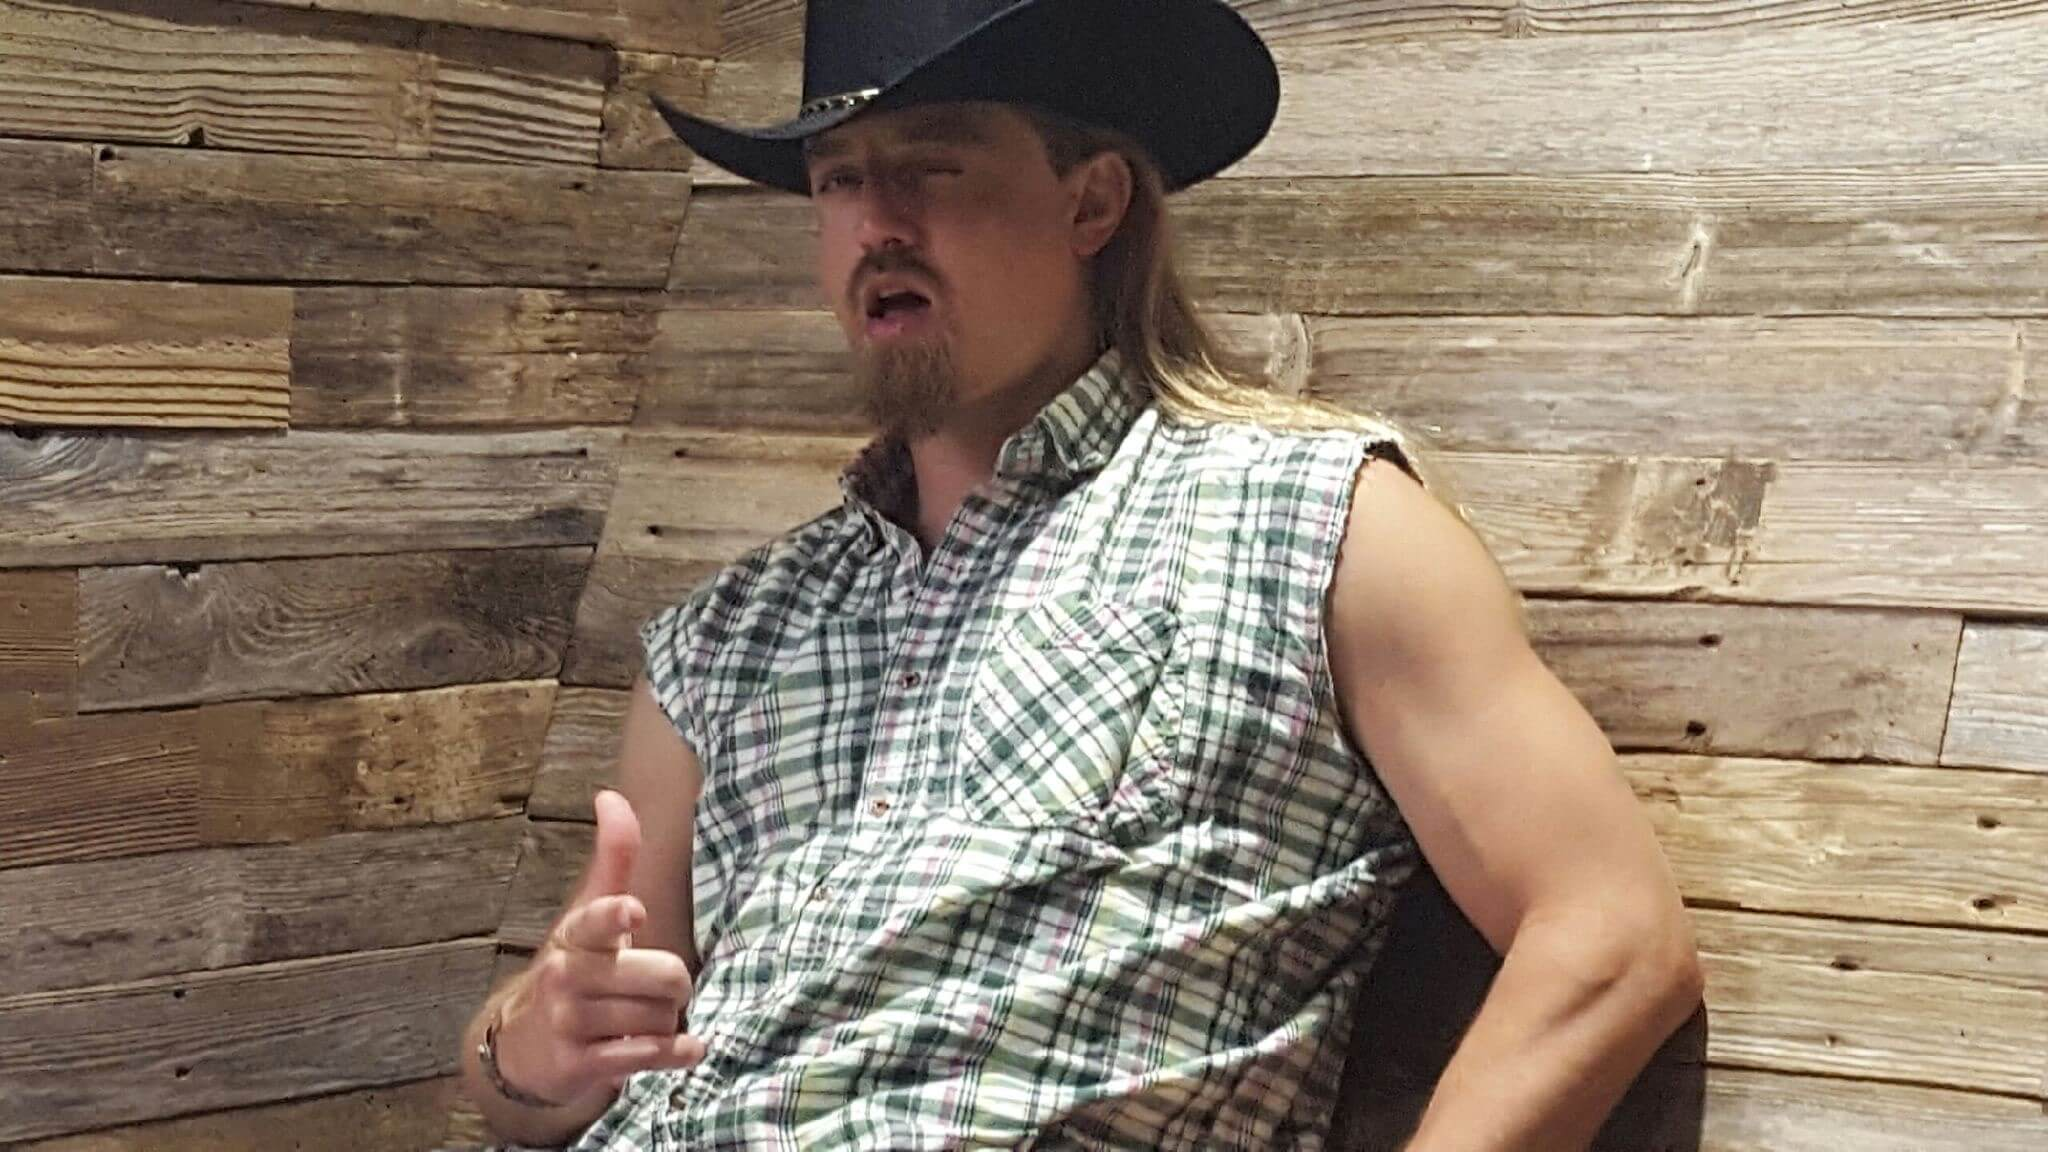 Halloween Costumes For Men With Long Hair - A Cowboy